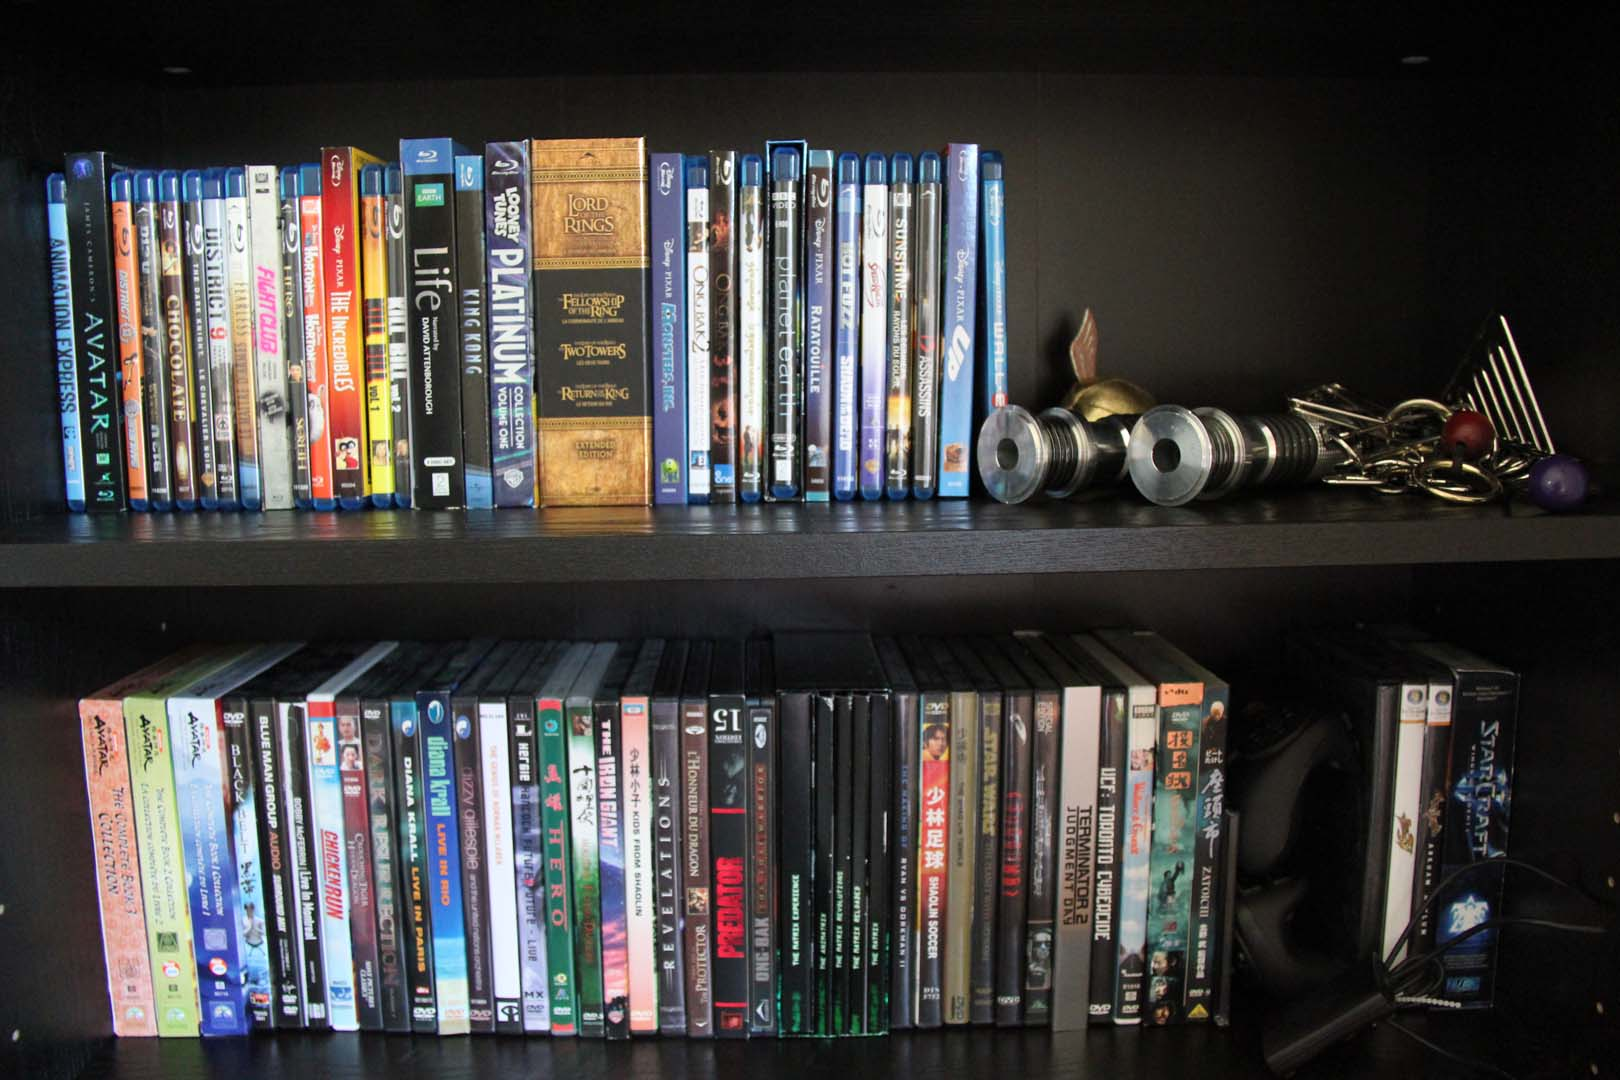 Filmsammlung Show Off Your Movie Collection (page 1) — Off Topic